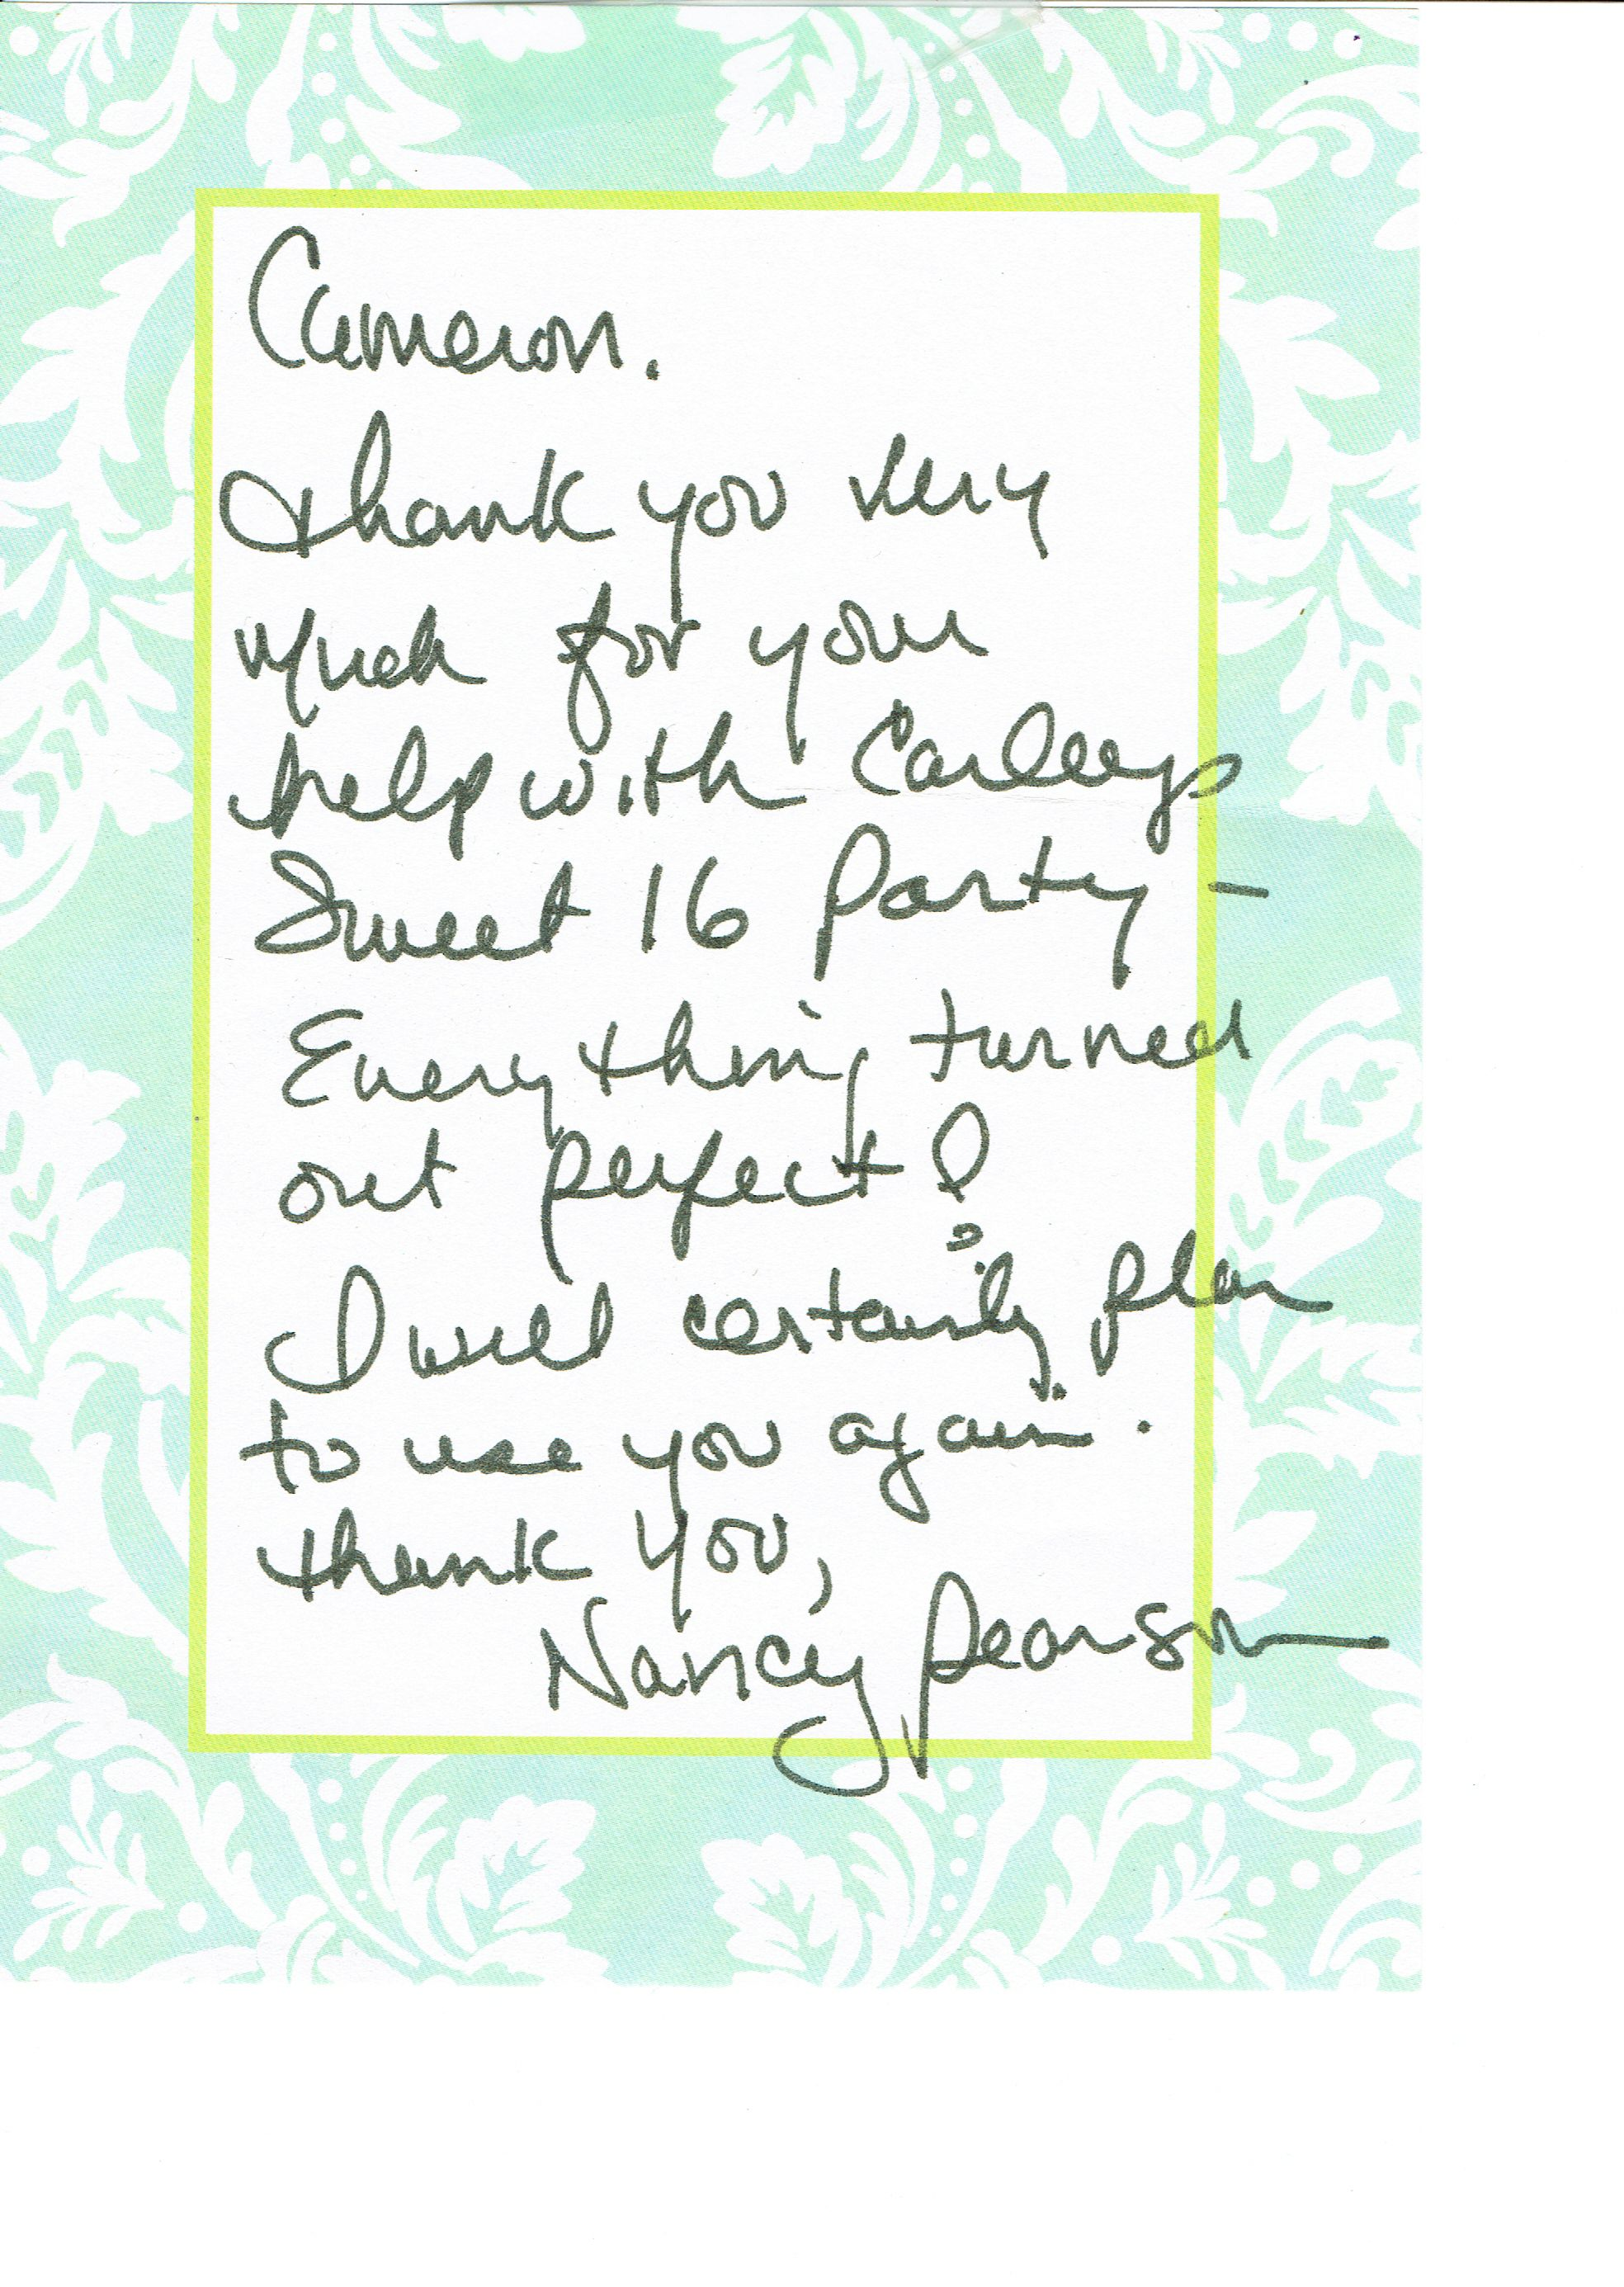 Thank you note - Nancy Pearson